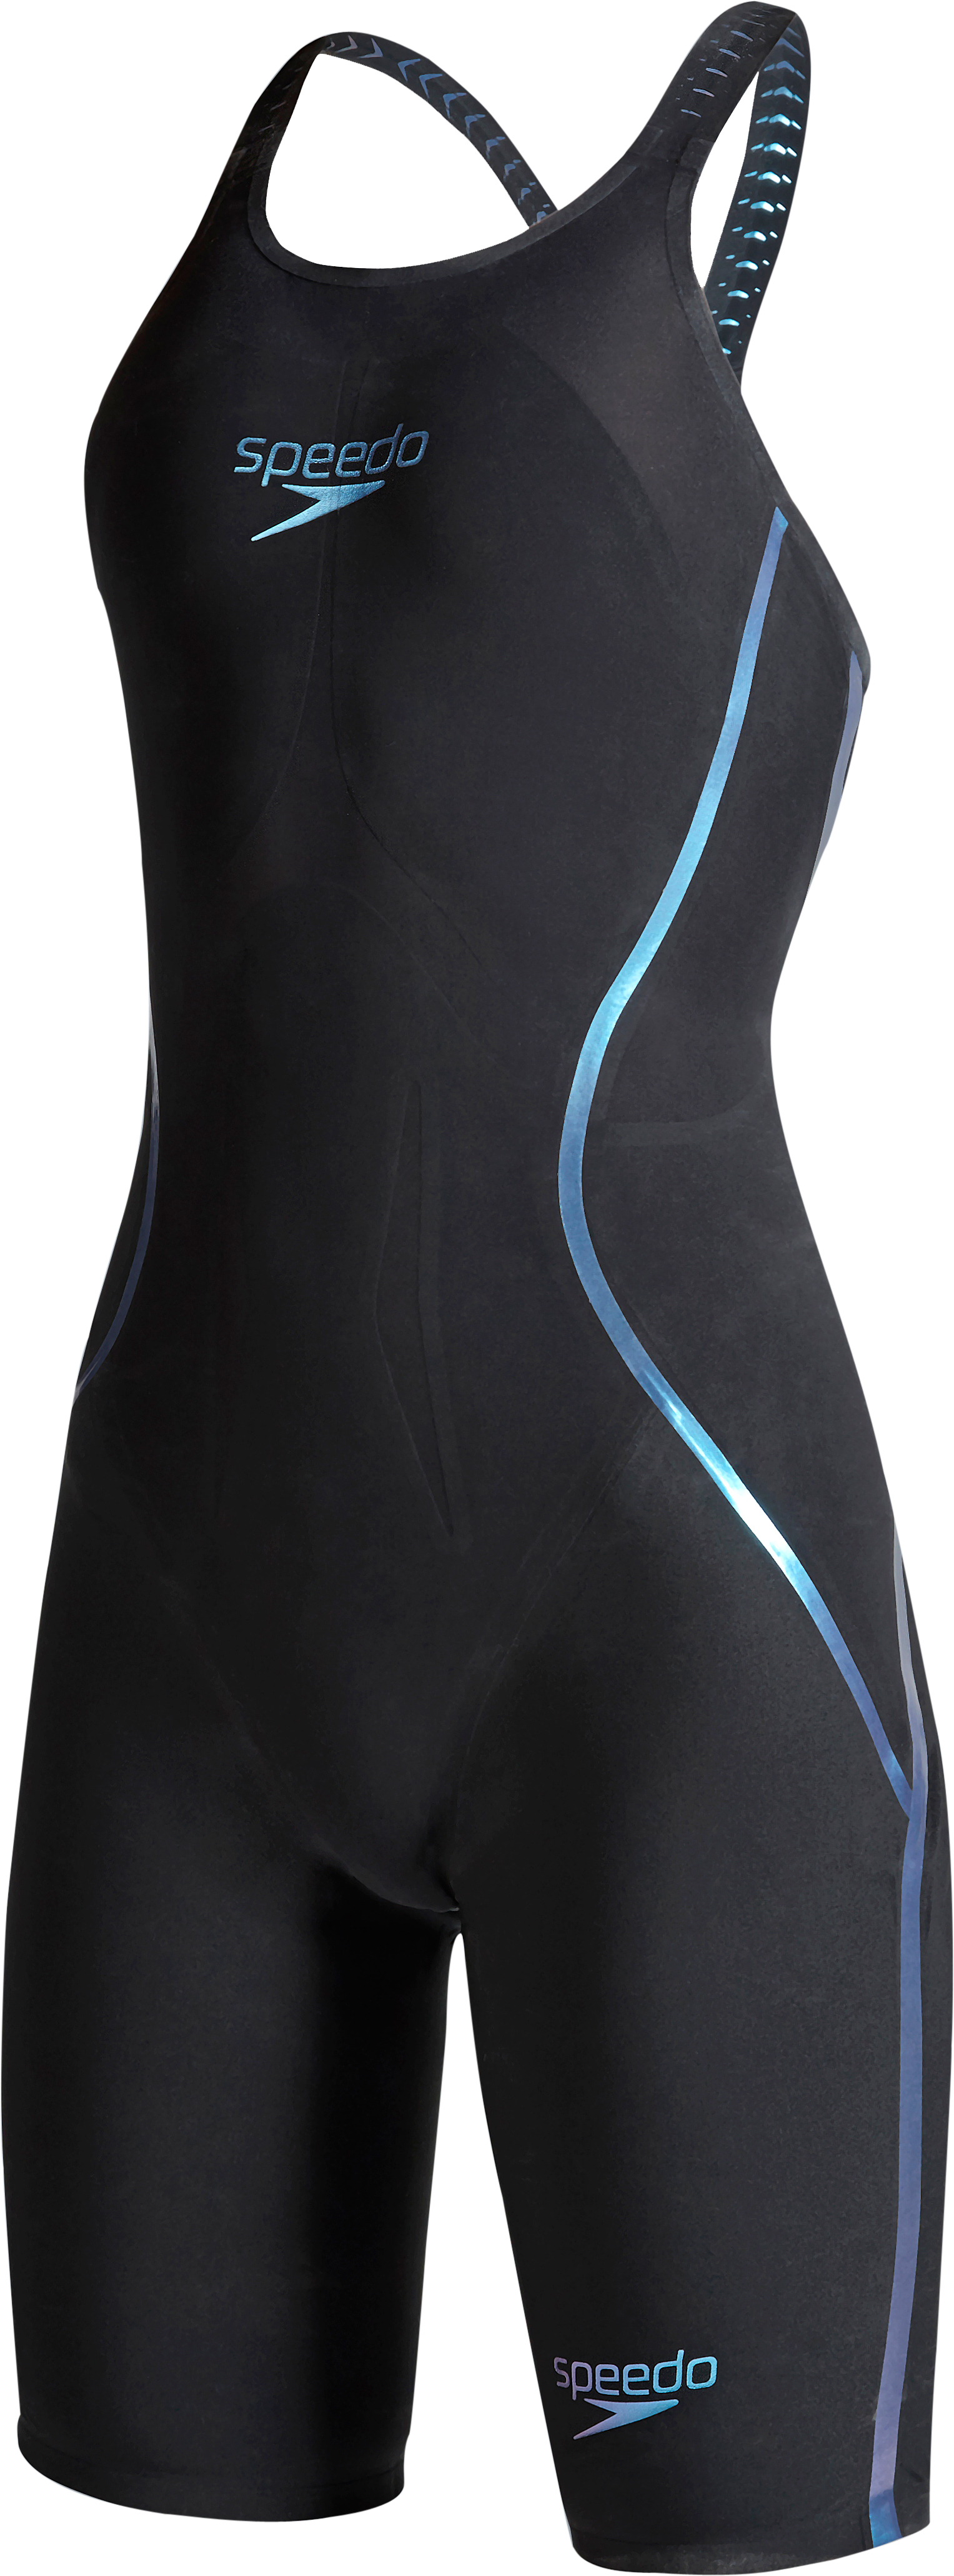 Womens Swimming Costume